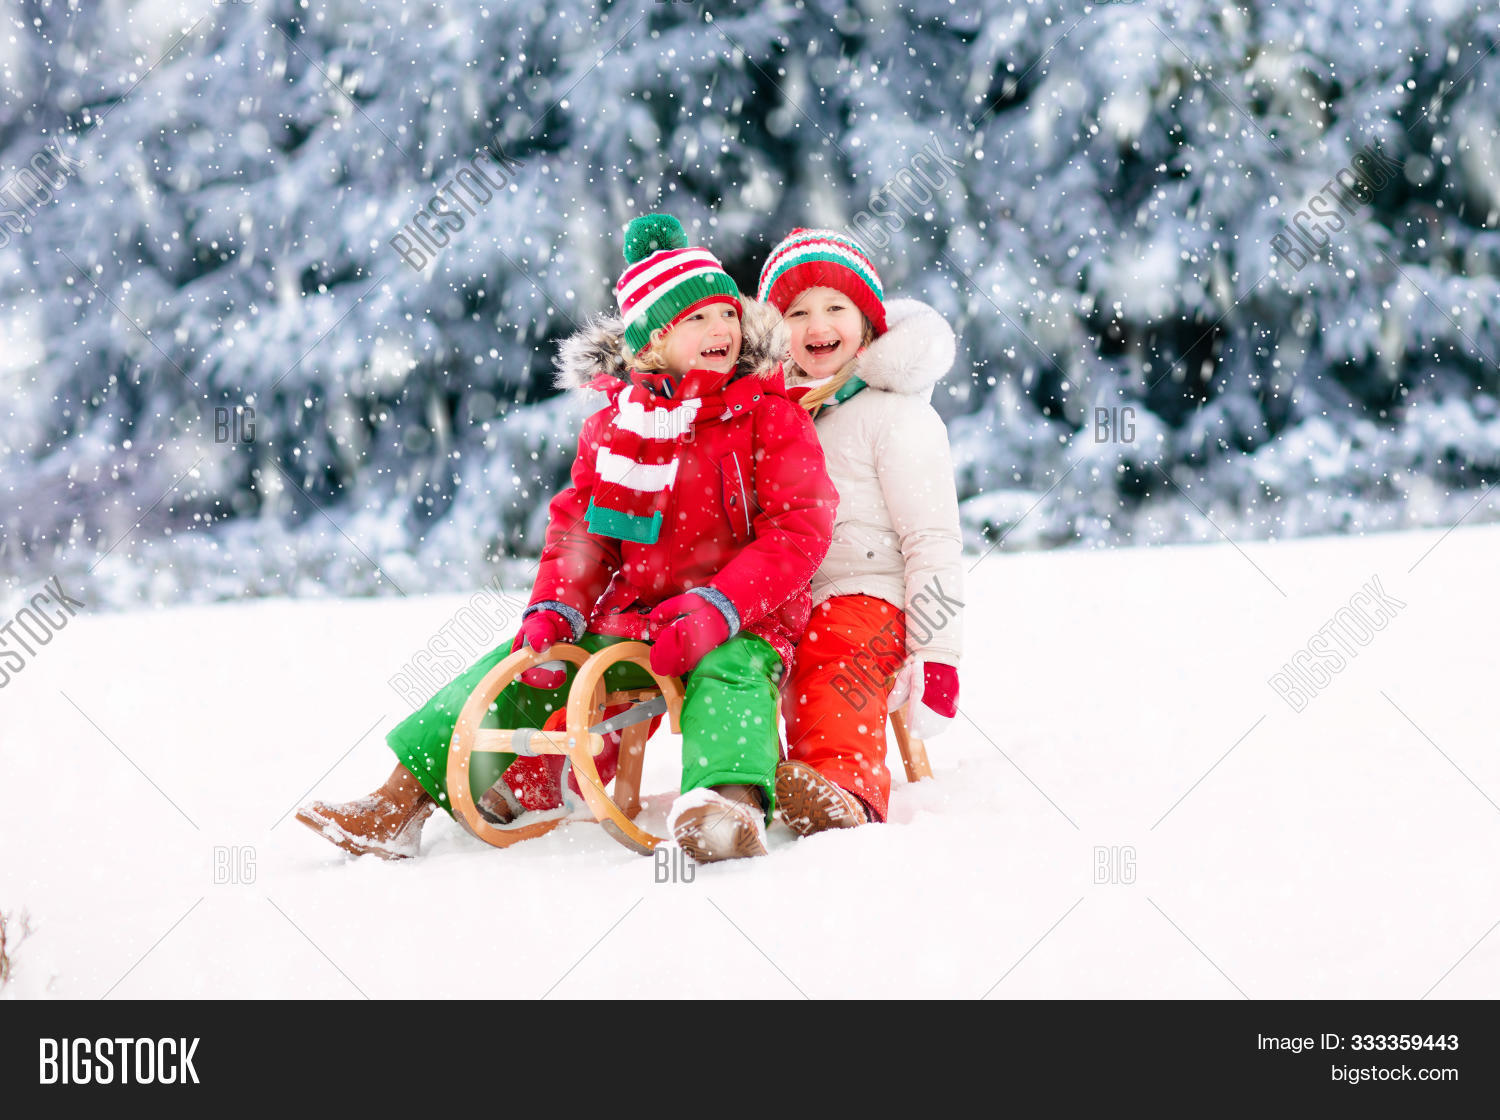 activity,alps,baby,boy,brother,child,christmas,cold,colorful,family,forest,friends,fun,funny,germany,girl,happy,hat,holiday,kids,little,mountains,nature,new,outdoors,park,people,play,ride,season,siblings,sister,sled,sledge,sleigh,slide,snow,snowy,sport,toddler,together,tree,twins,two,vacation,white,winter,xmas,year,young